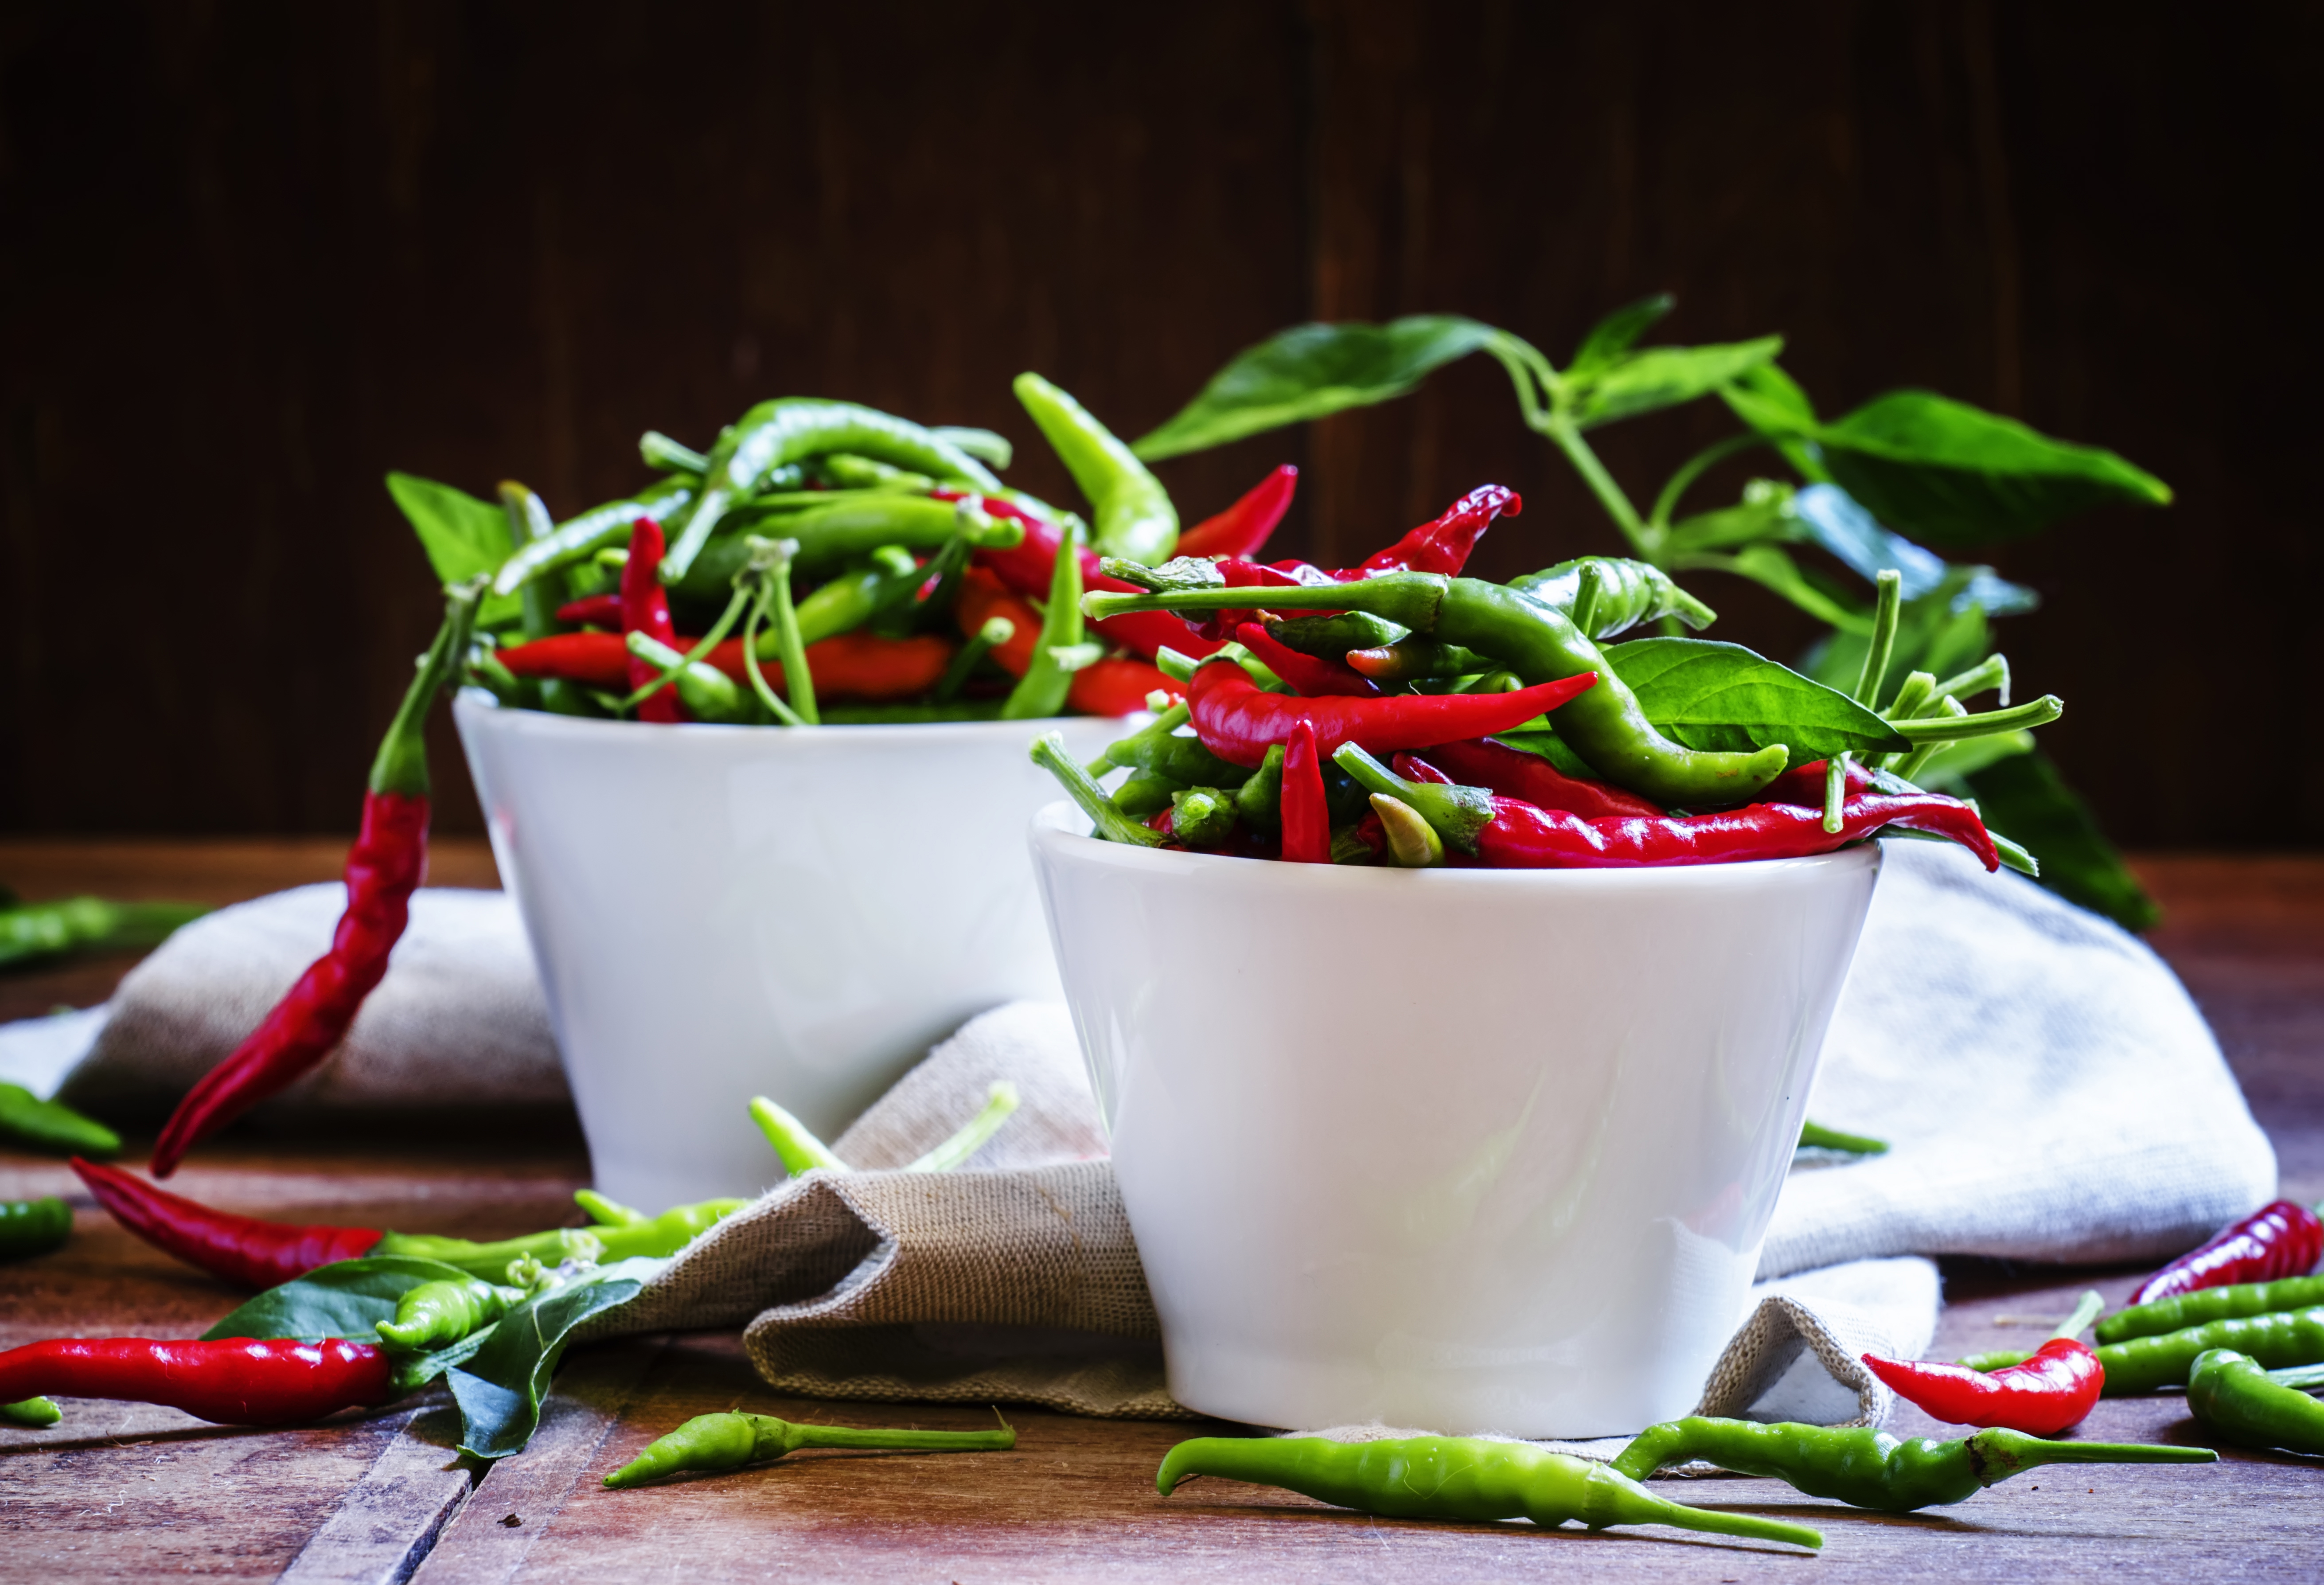 Gardening with Hot Peppers